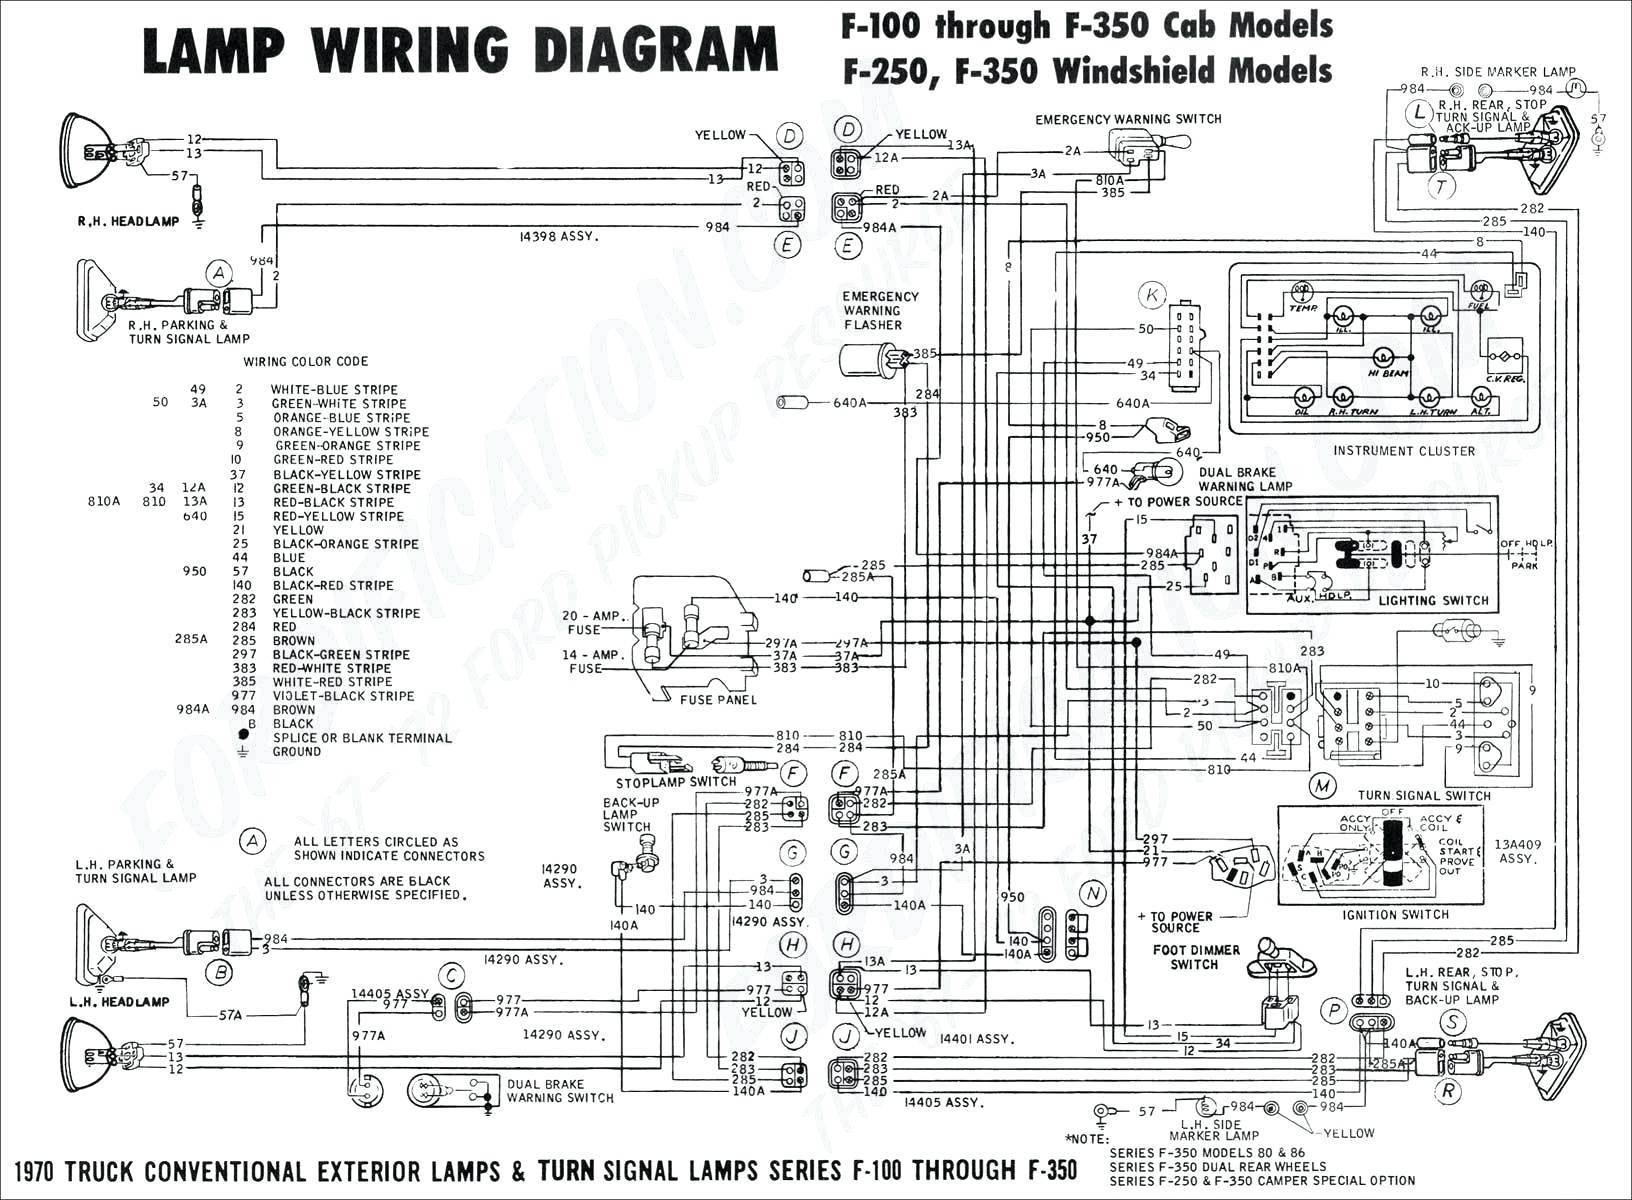 2000 ford excursion wiring diagram Download-38 2000 ford excursion fuse diagram famous Ford Excursion Fuse Diagram Graphic Standart Captures Including 03 12-k